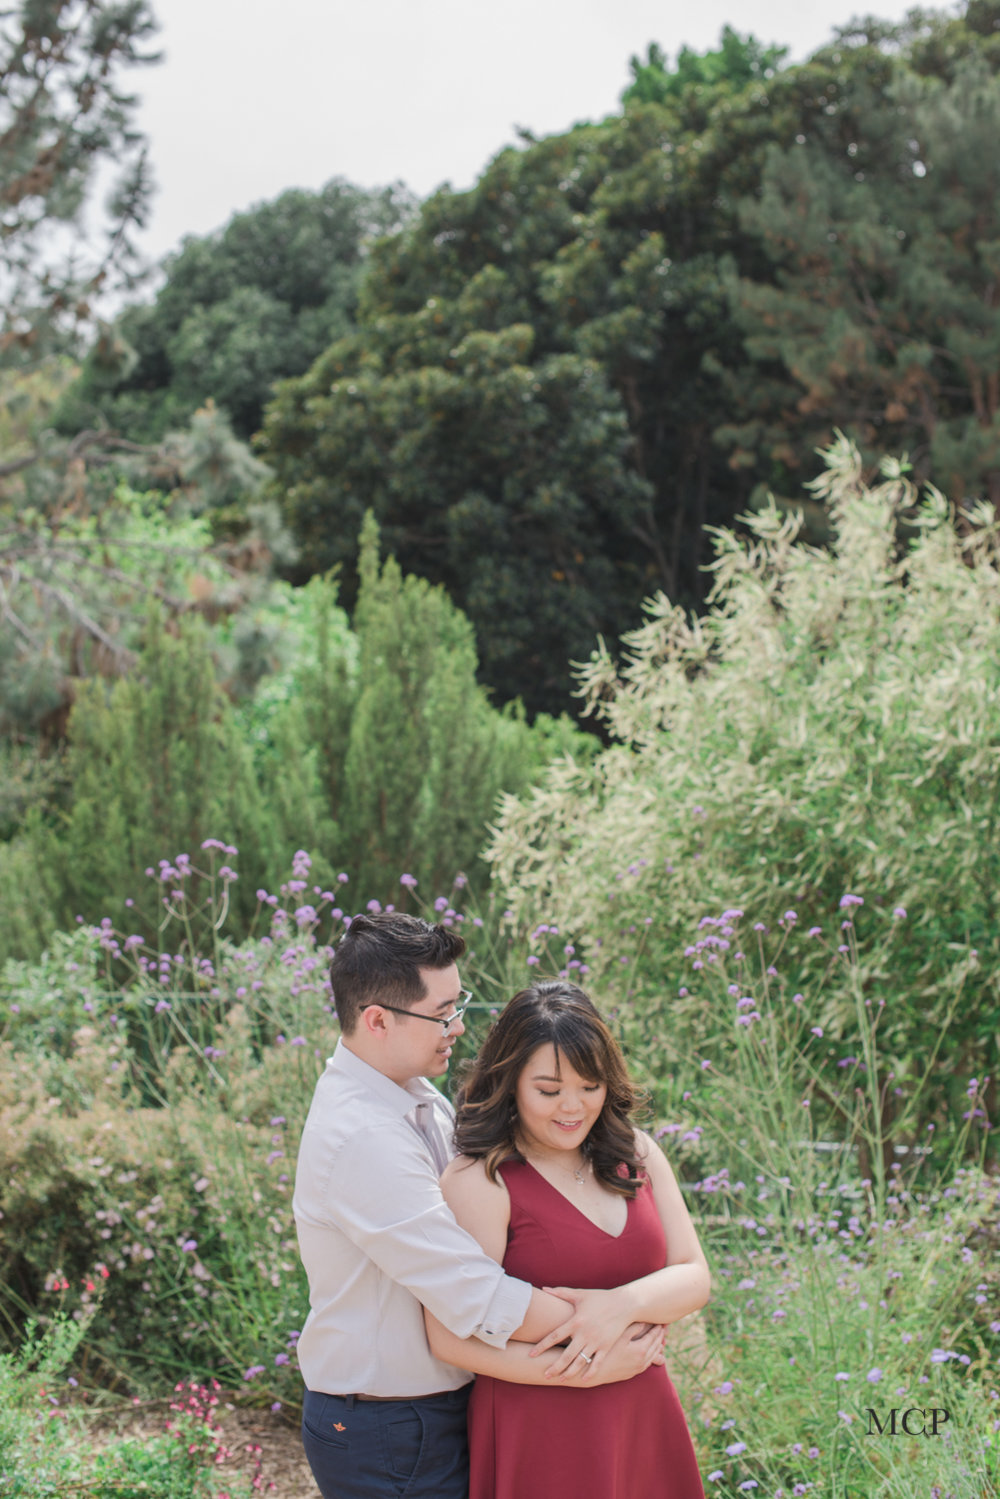 Stacey + Andrew Engagement BLOG-MCP4.jpg